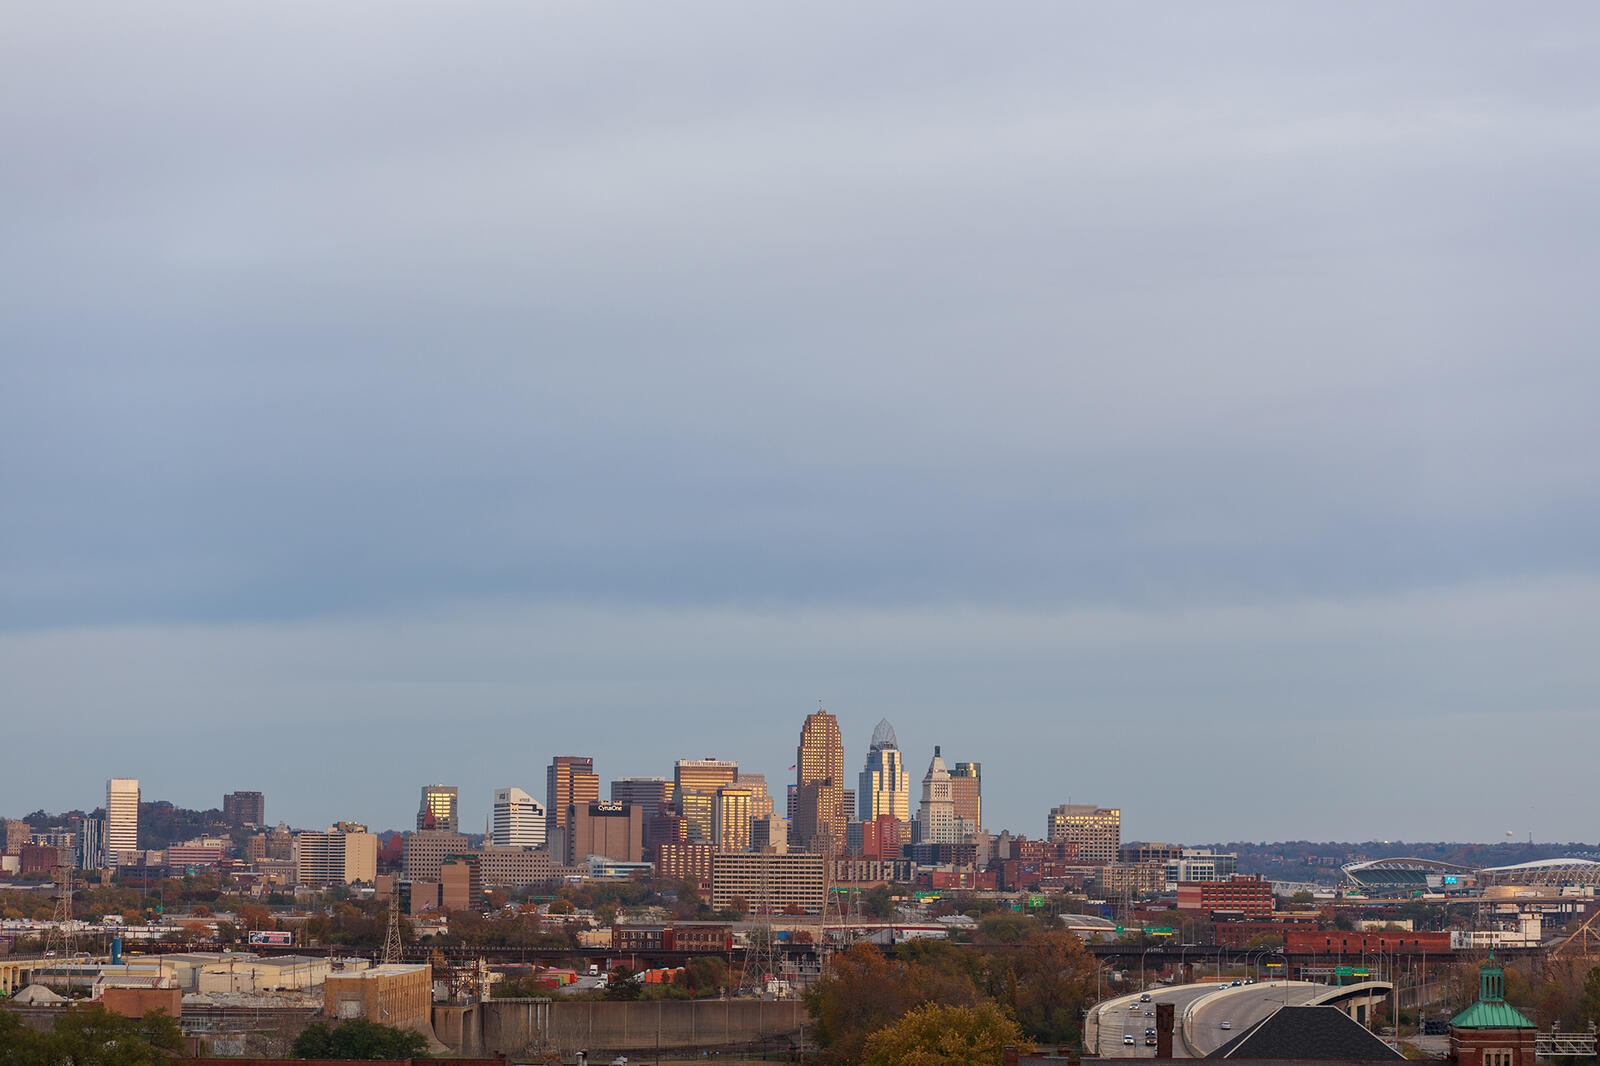 Skyline of the city of Cincinnati against a cloudy sky.